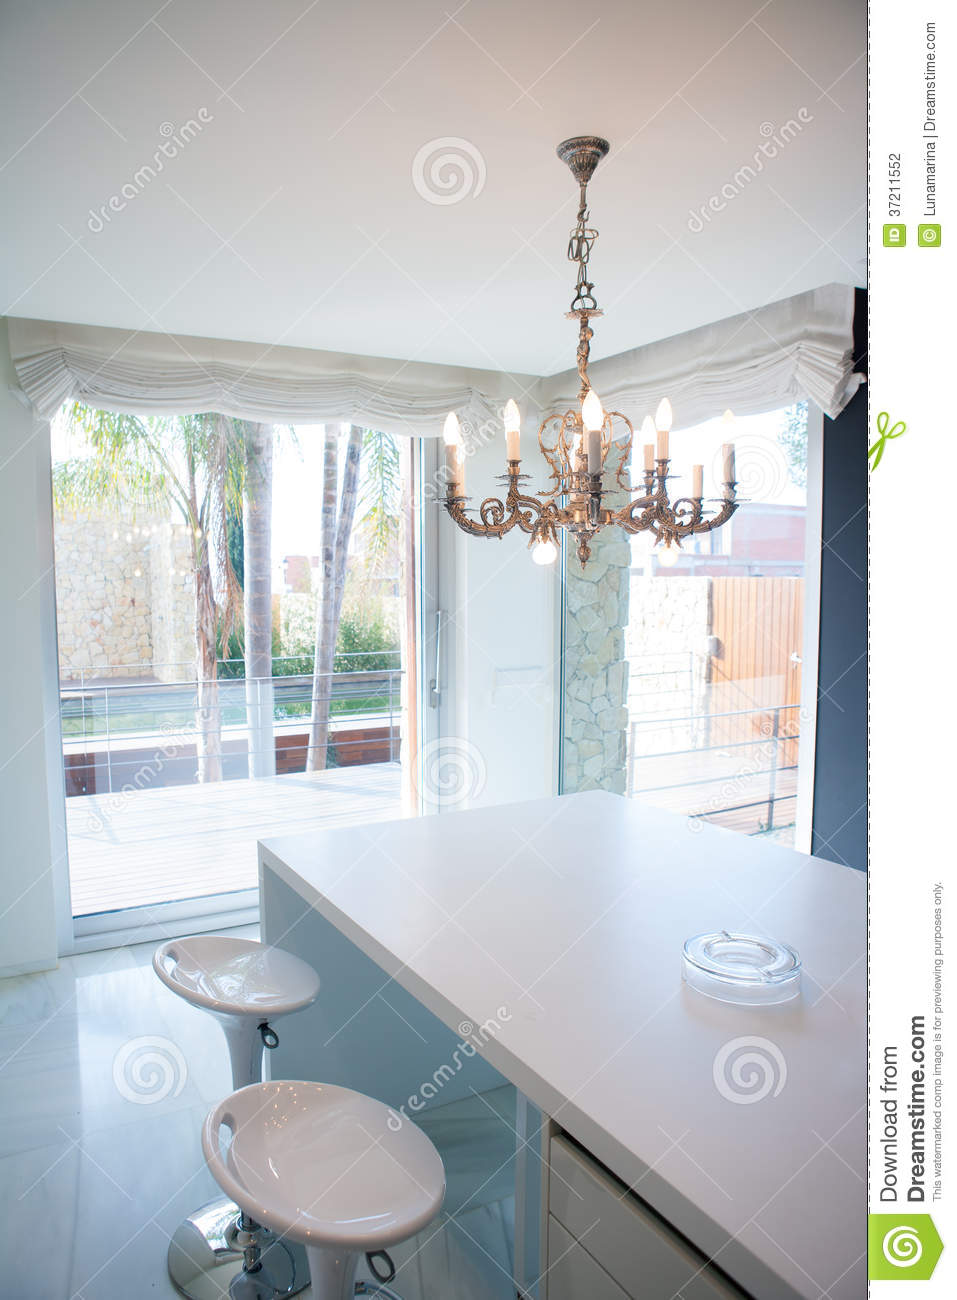 table de cuisine blanche moderne avec le lustre de vintage photo stock image 37211552. Black Bedroom Furniture Sets. Home Design Ideas